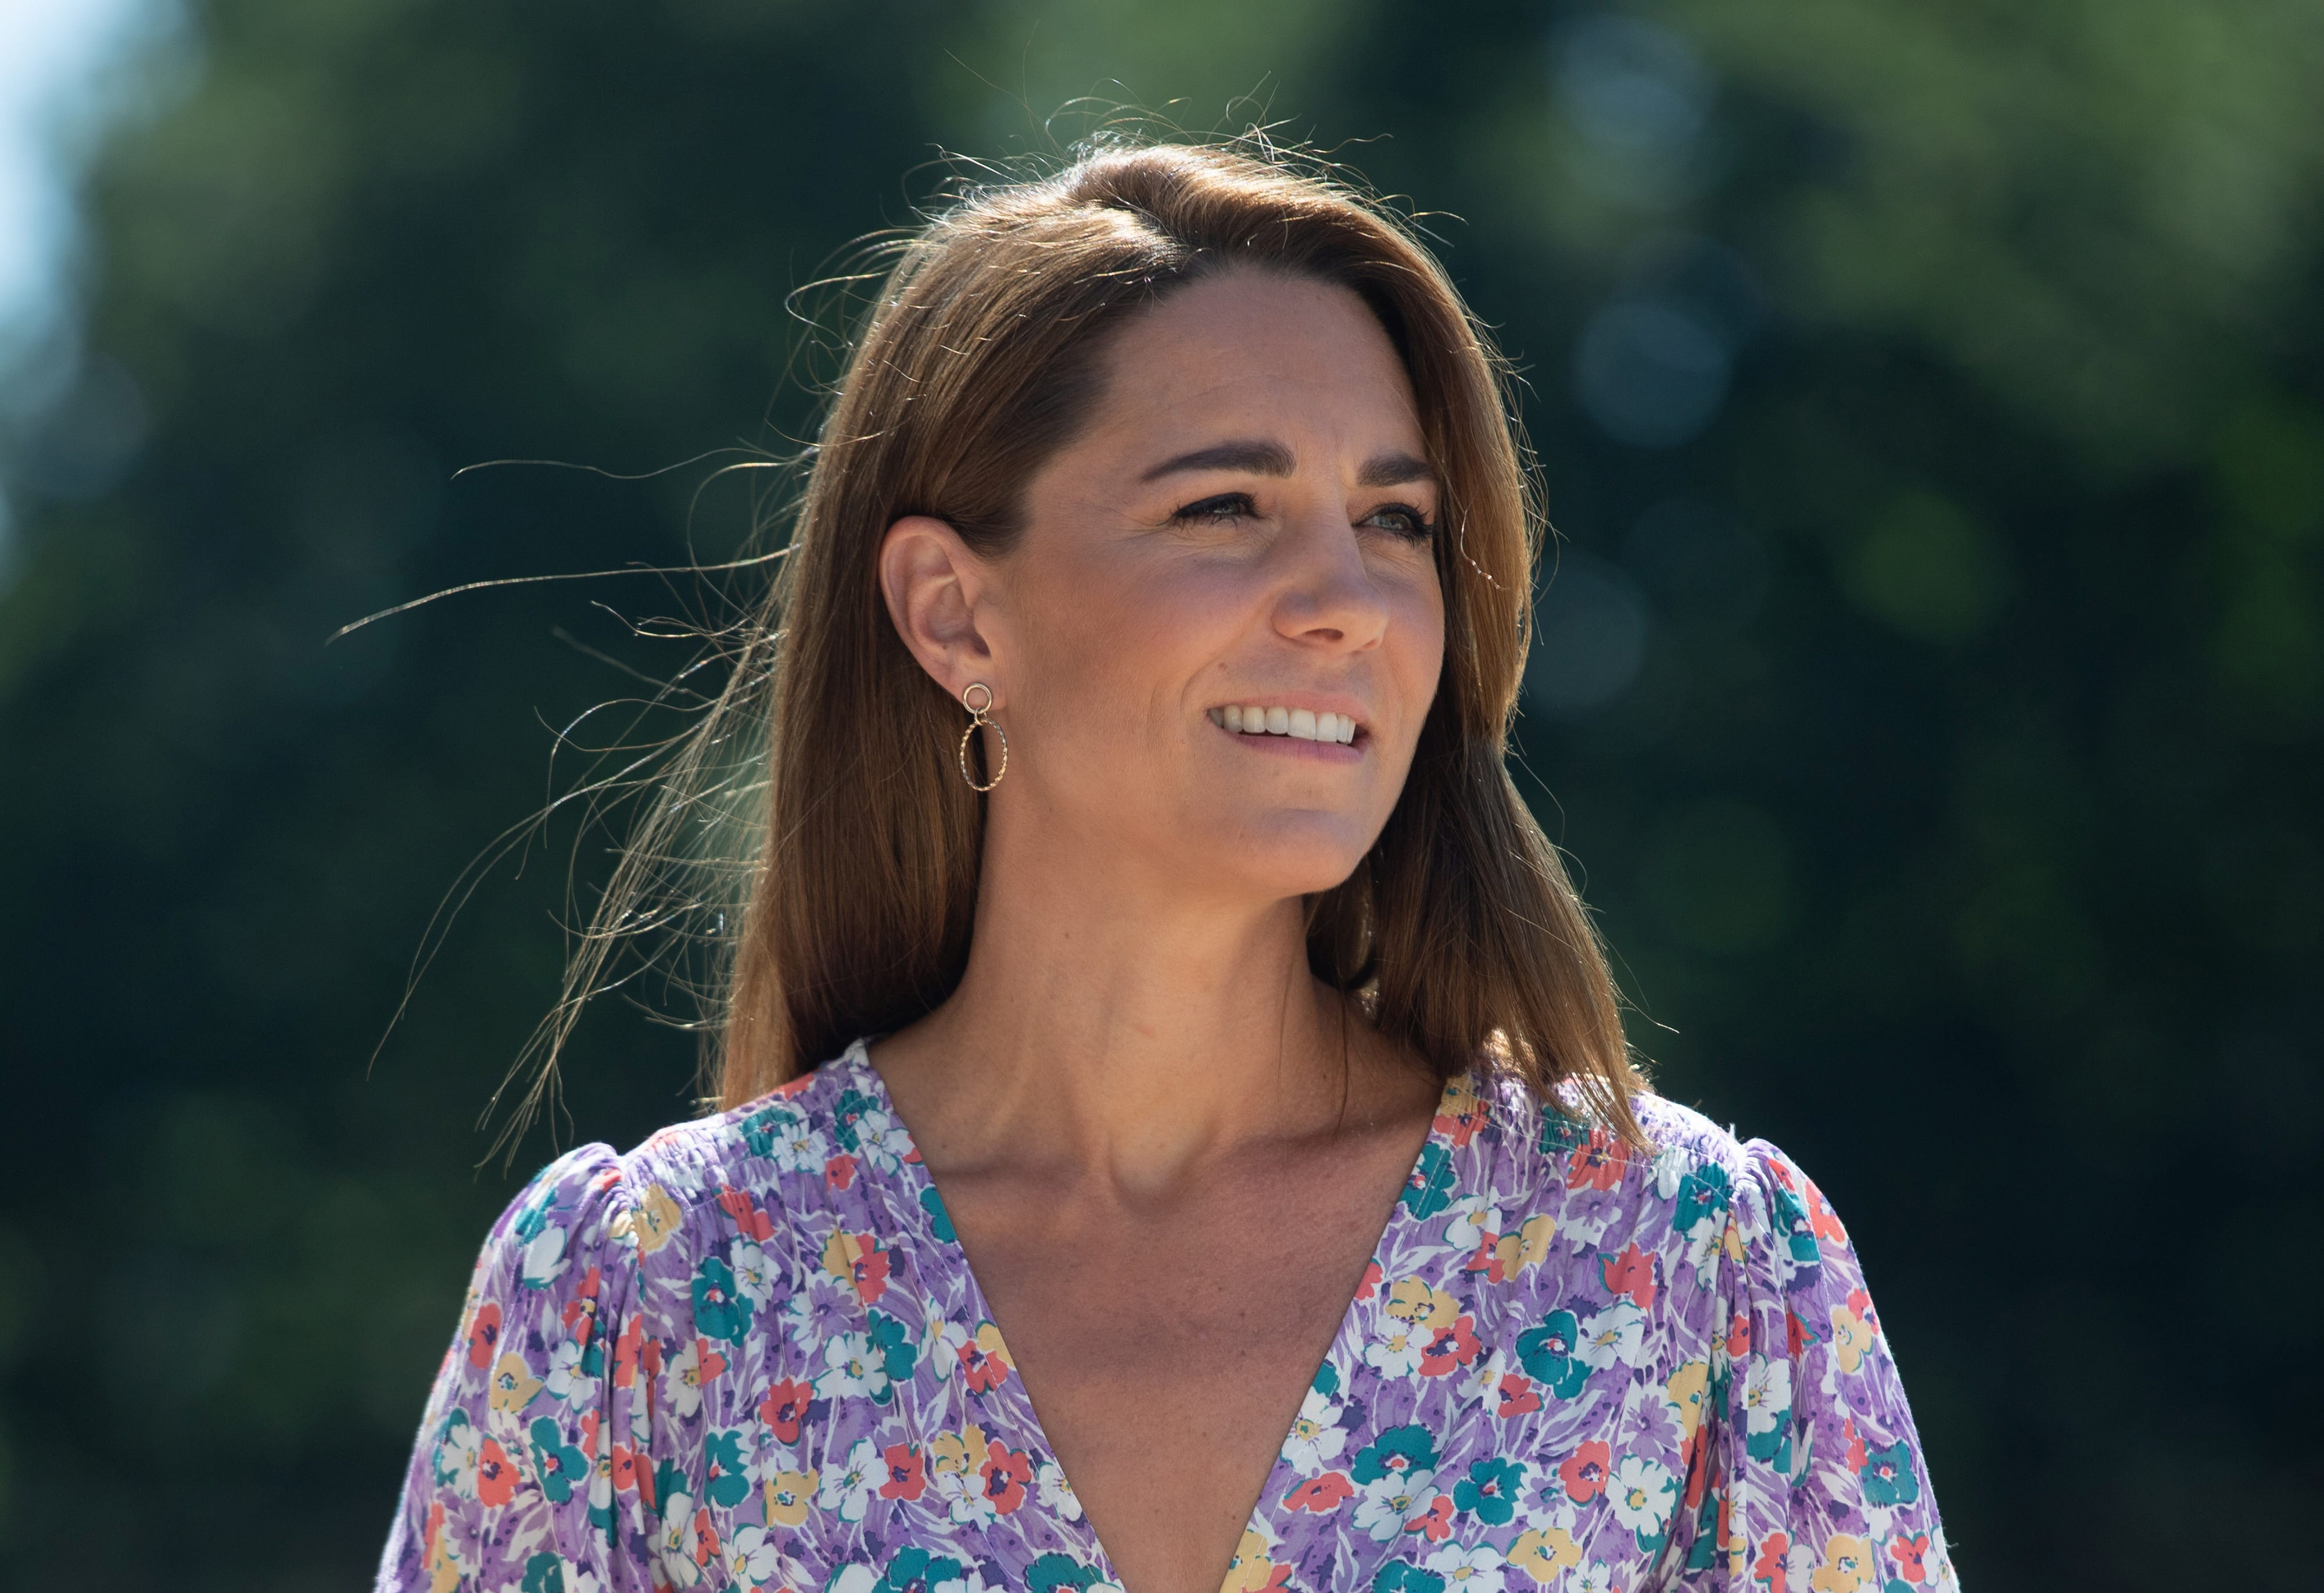 observer.com - Morgan Halberg - Kate Middleton Is Upset By the New 'Finding Freedom' Claims